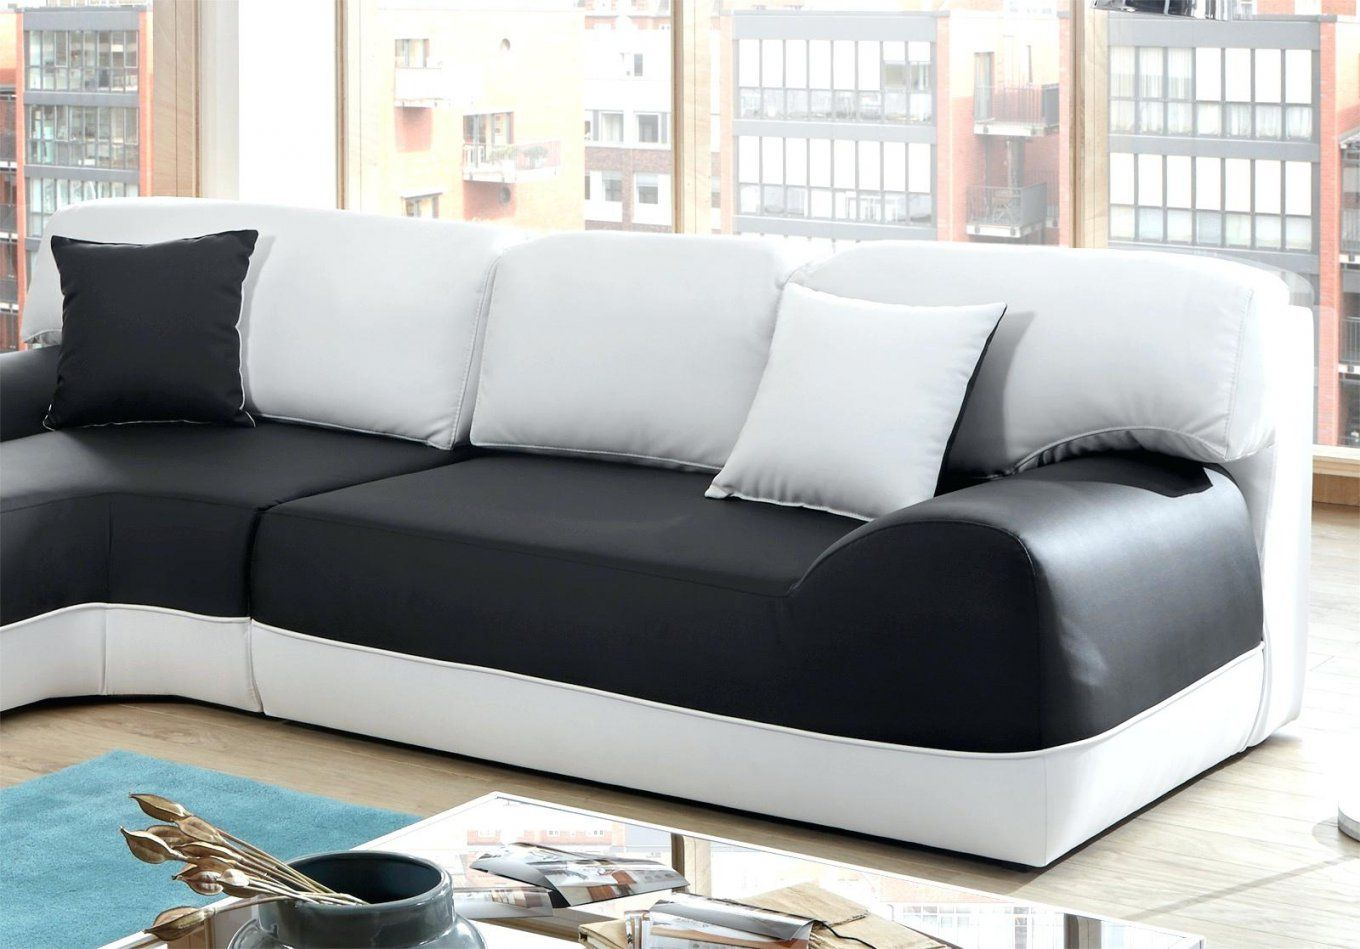 otto big sofa xxl haus design ideen. Black Bedroom Furniture Sets. Home Design Ideas